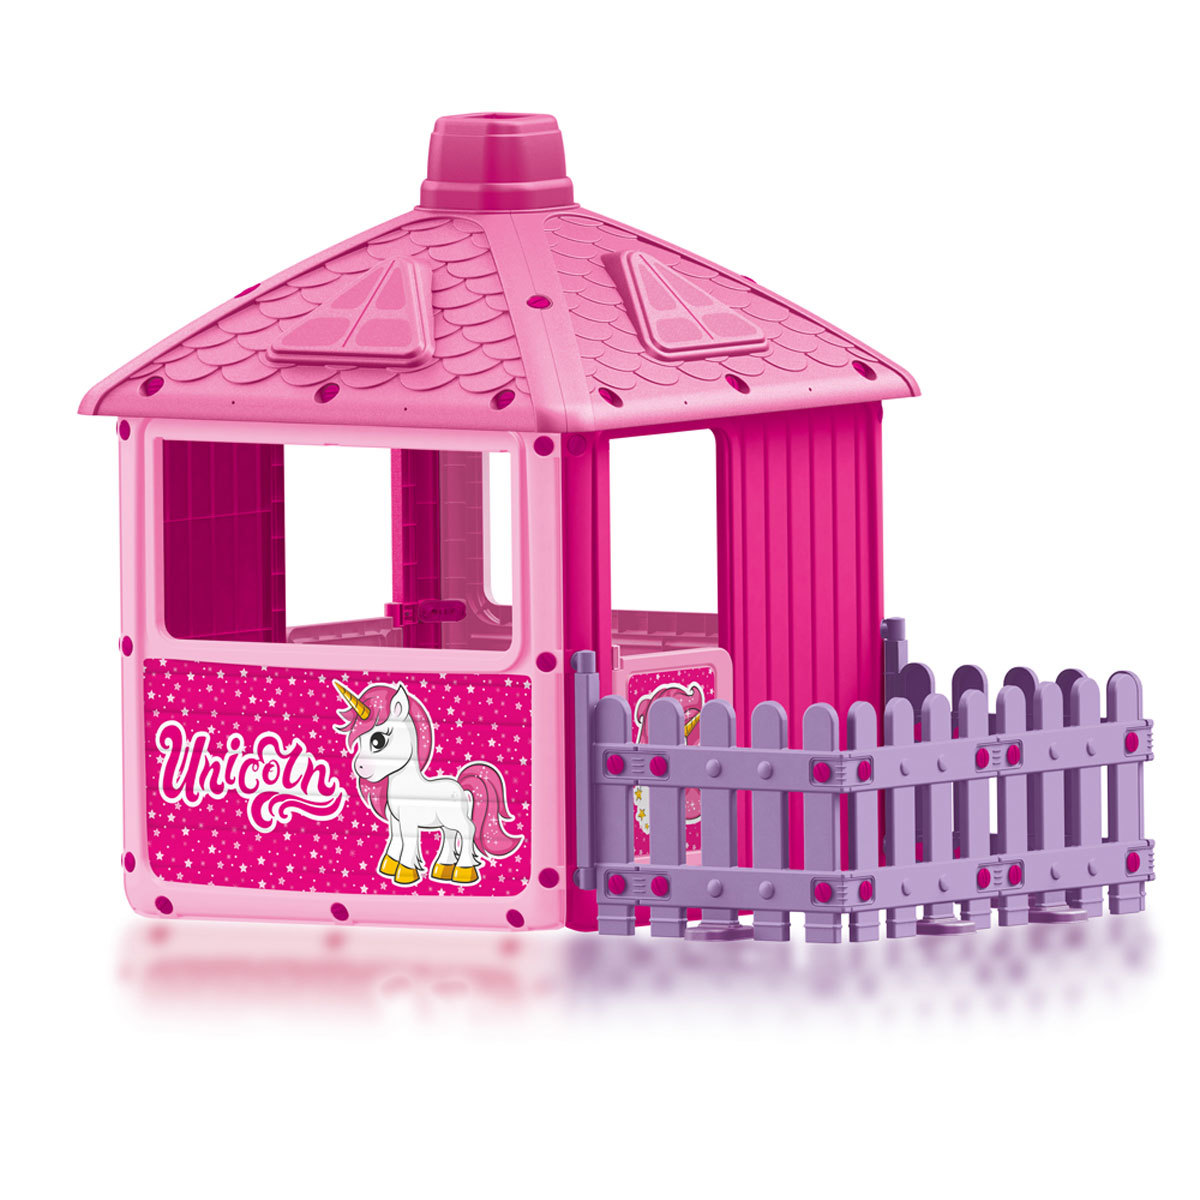 Dolu Unicorn Themed Playhouse With Fence Feature (H135cm)| Indoor Or Outdoor Use from Early Learning Center